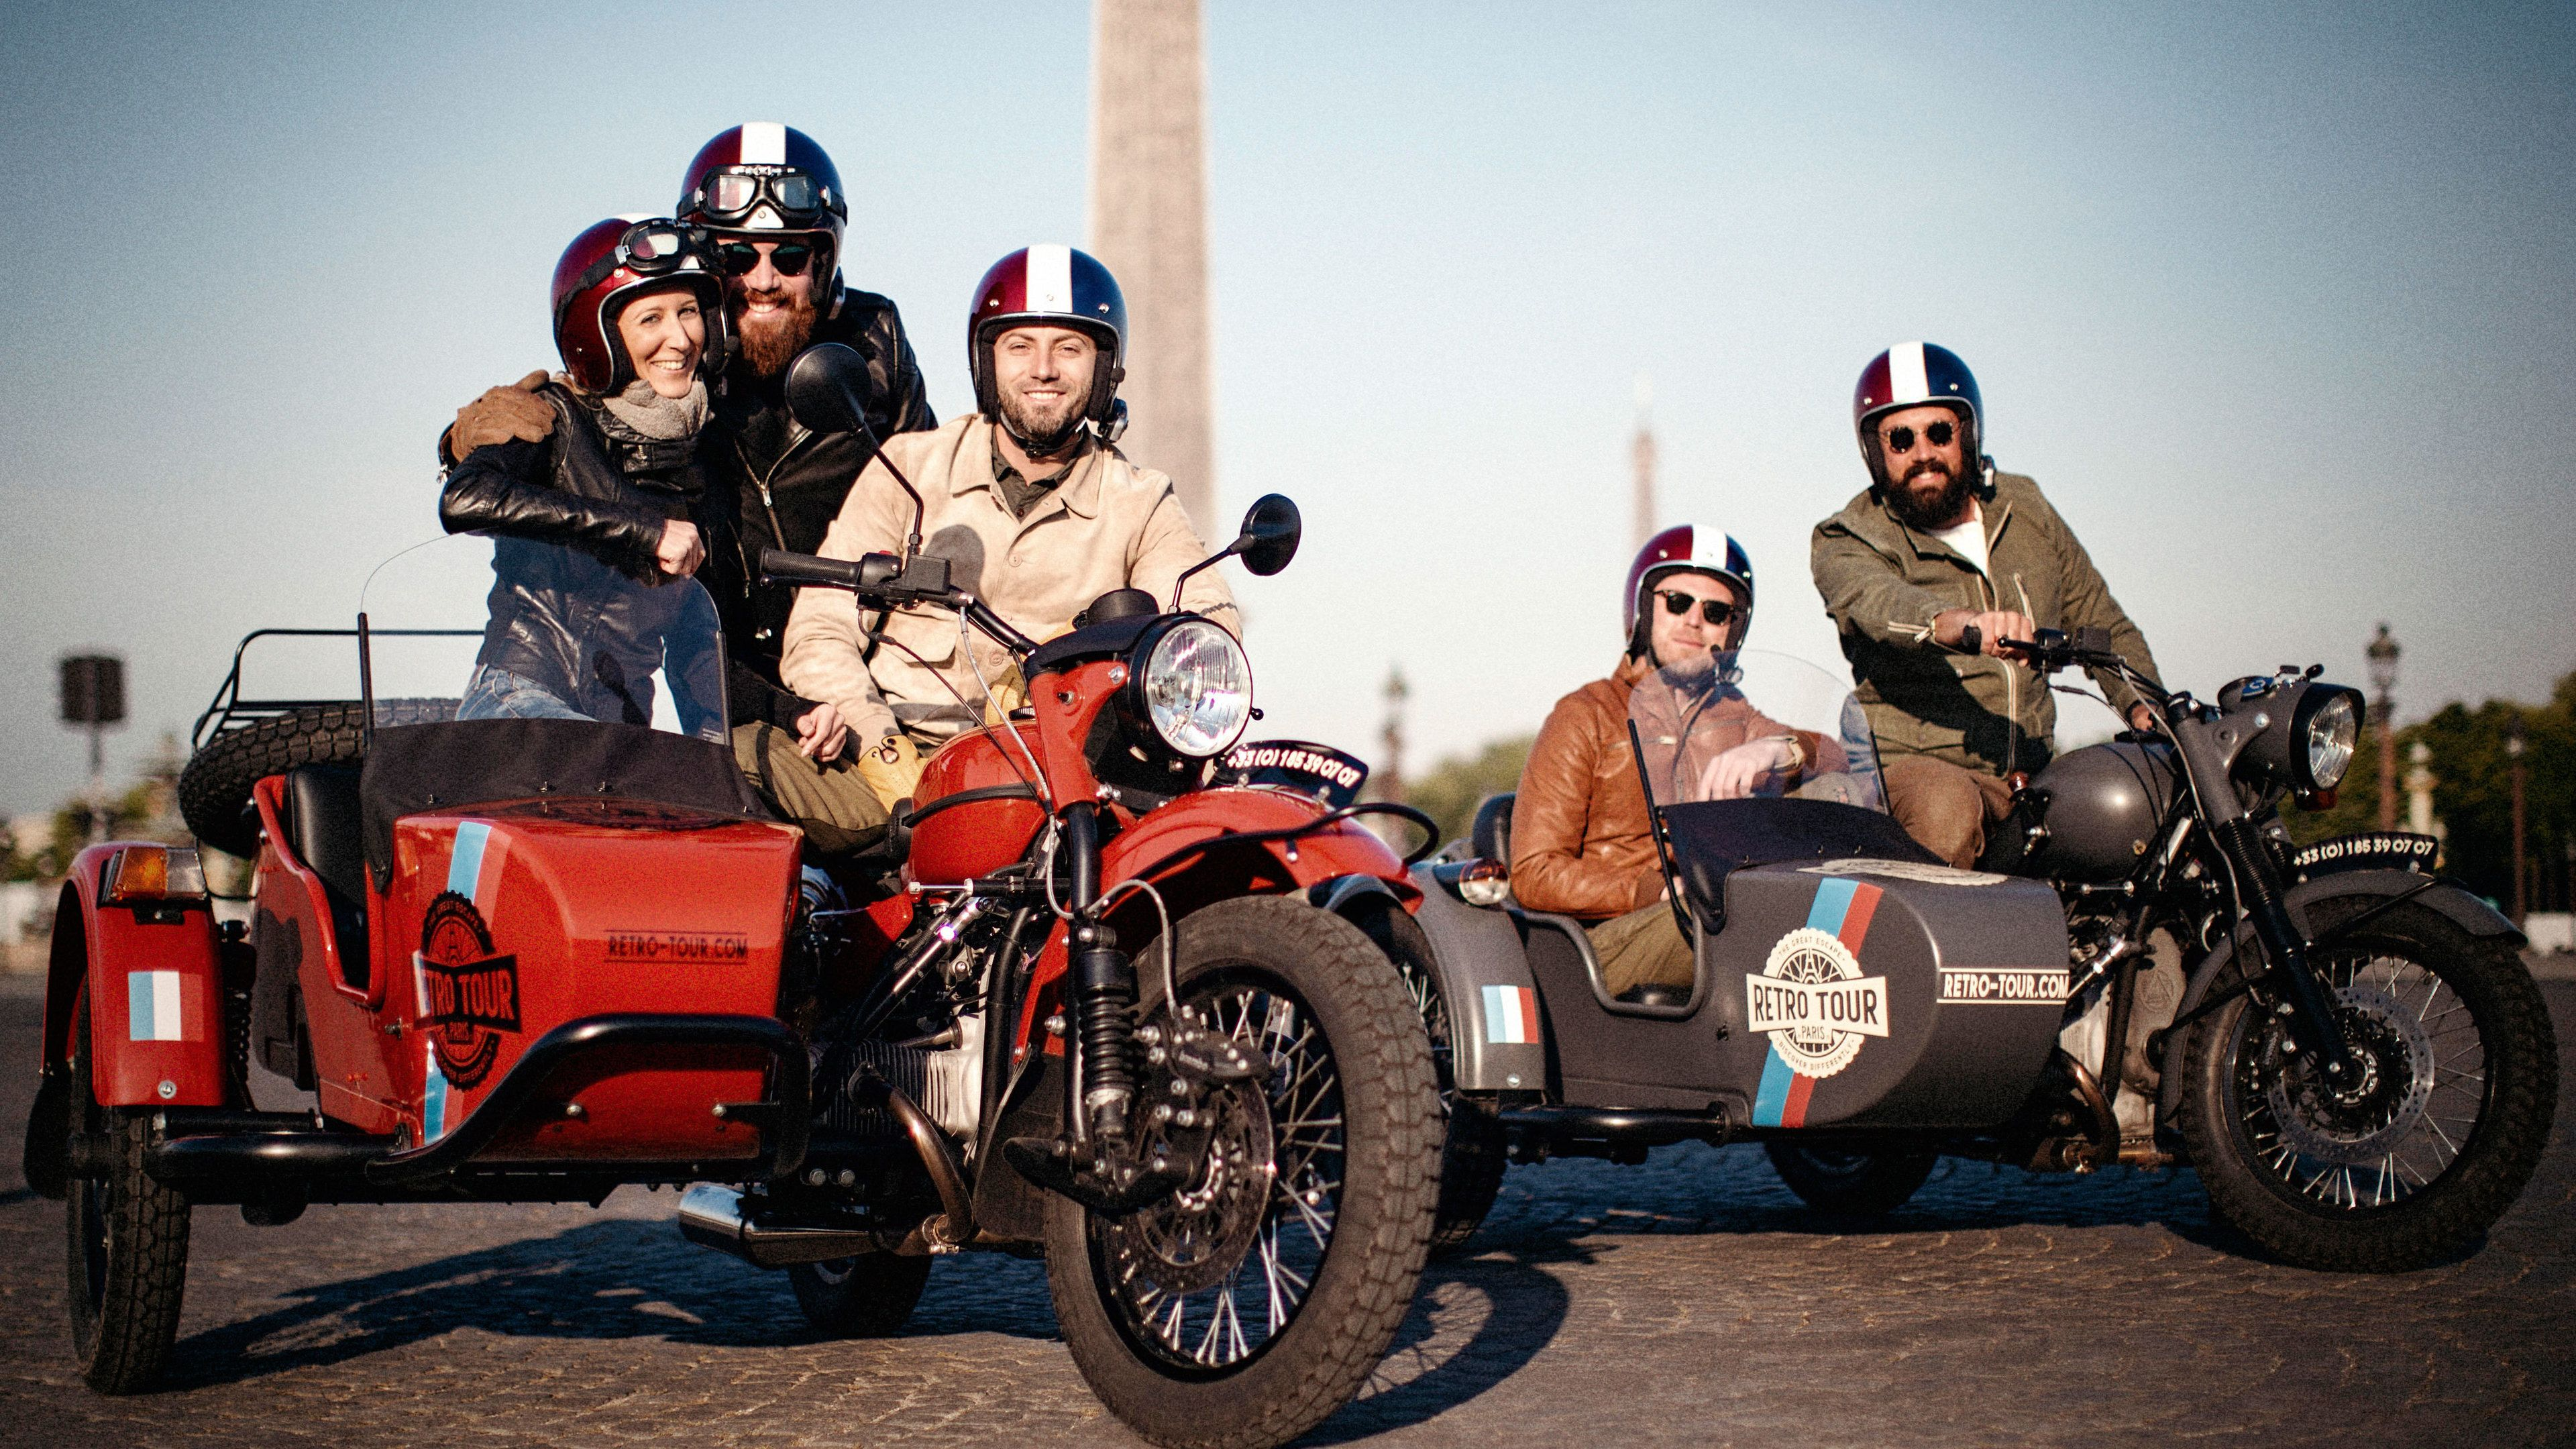 Tour group on motorcycles with sidecars in Paris